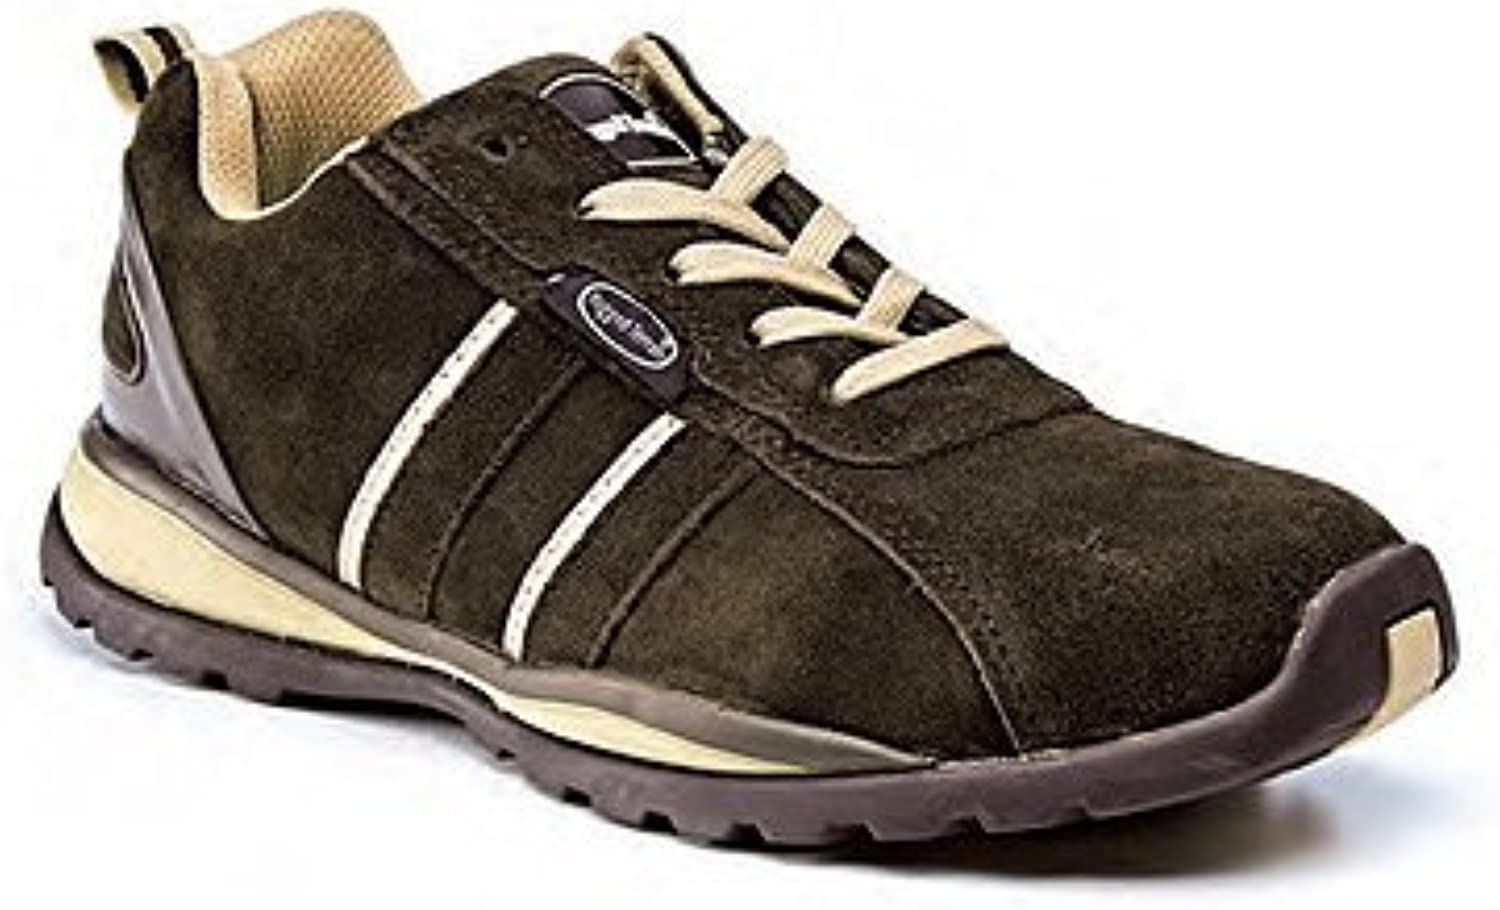 Brown & Cream Suede Unisex Safety Trainers - Choice of Sizes Available (Size 13) - Ref SFW04 13